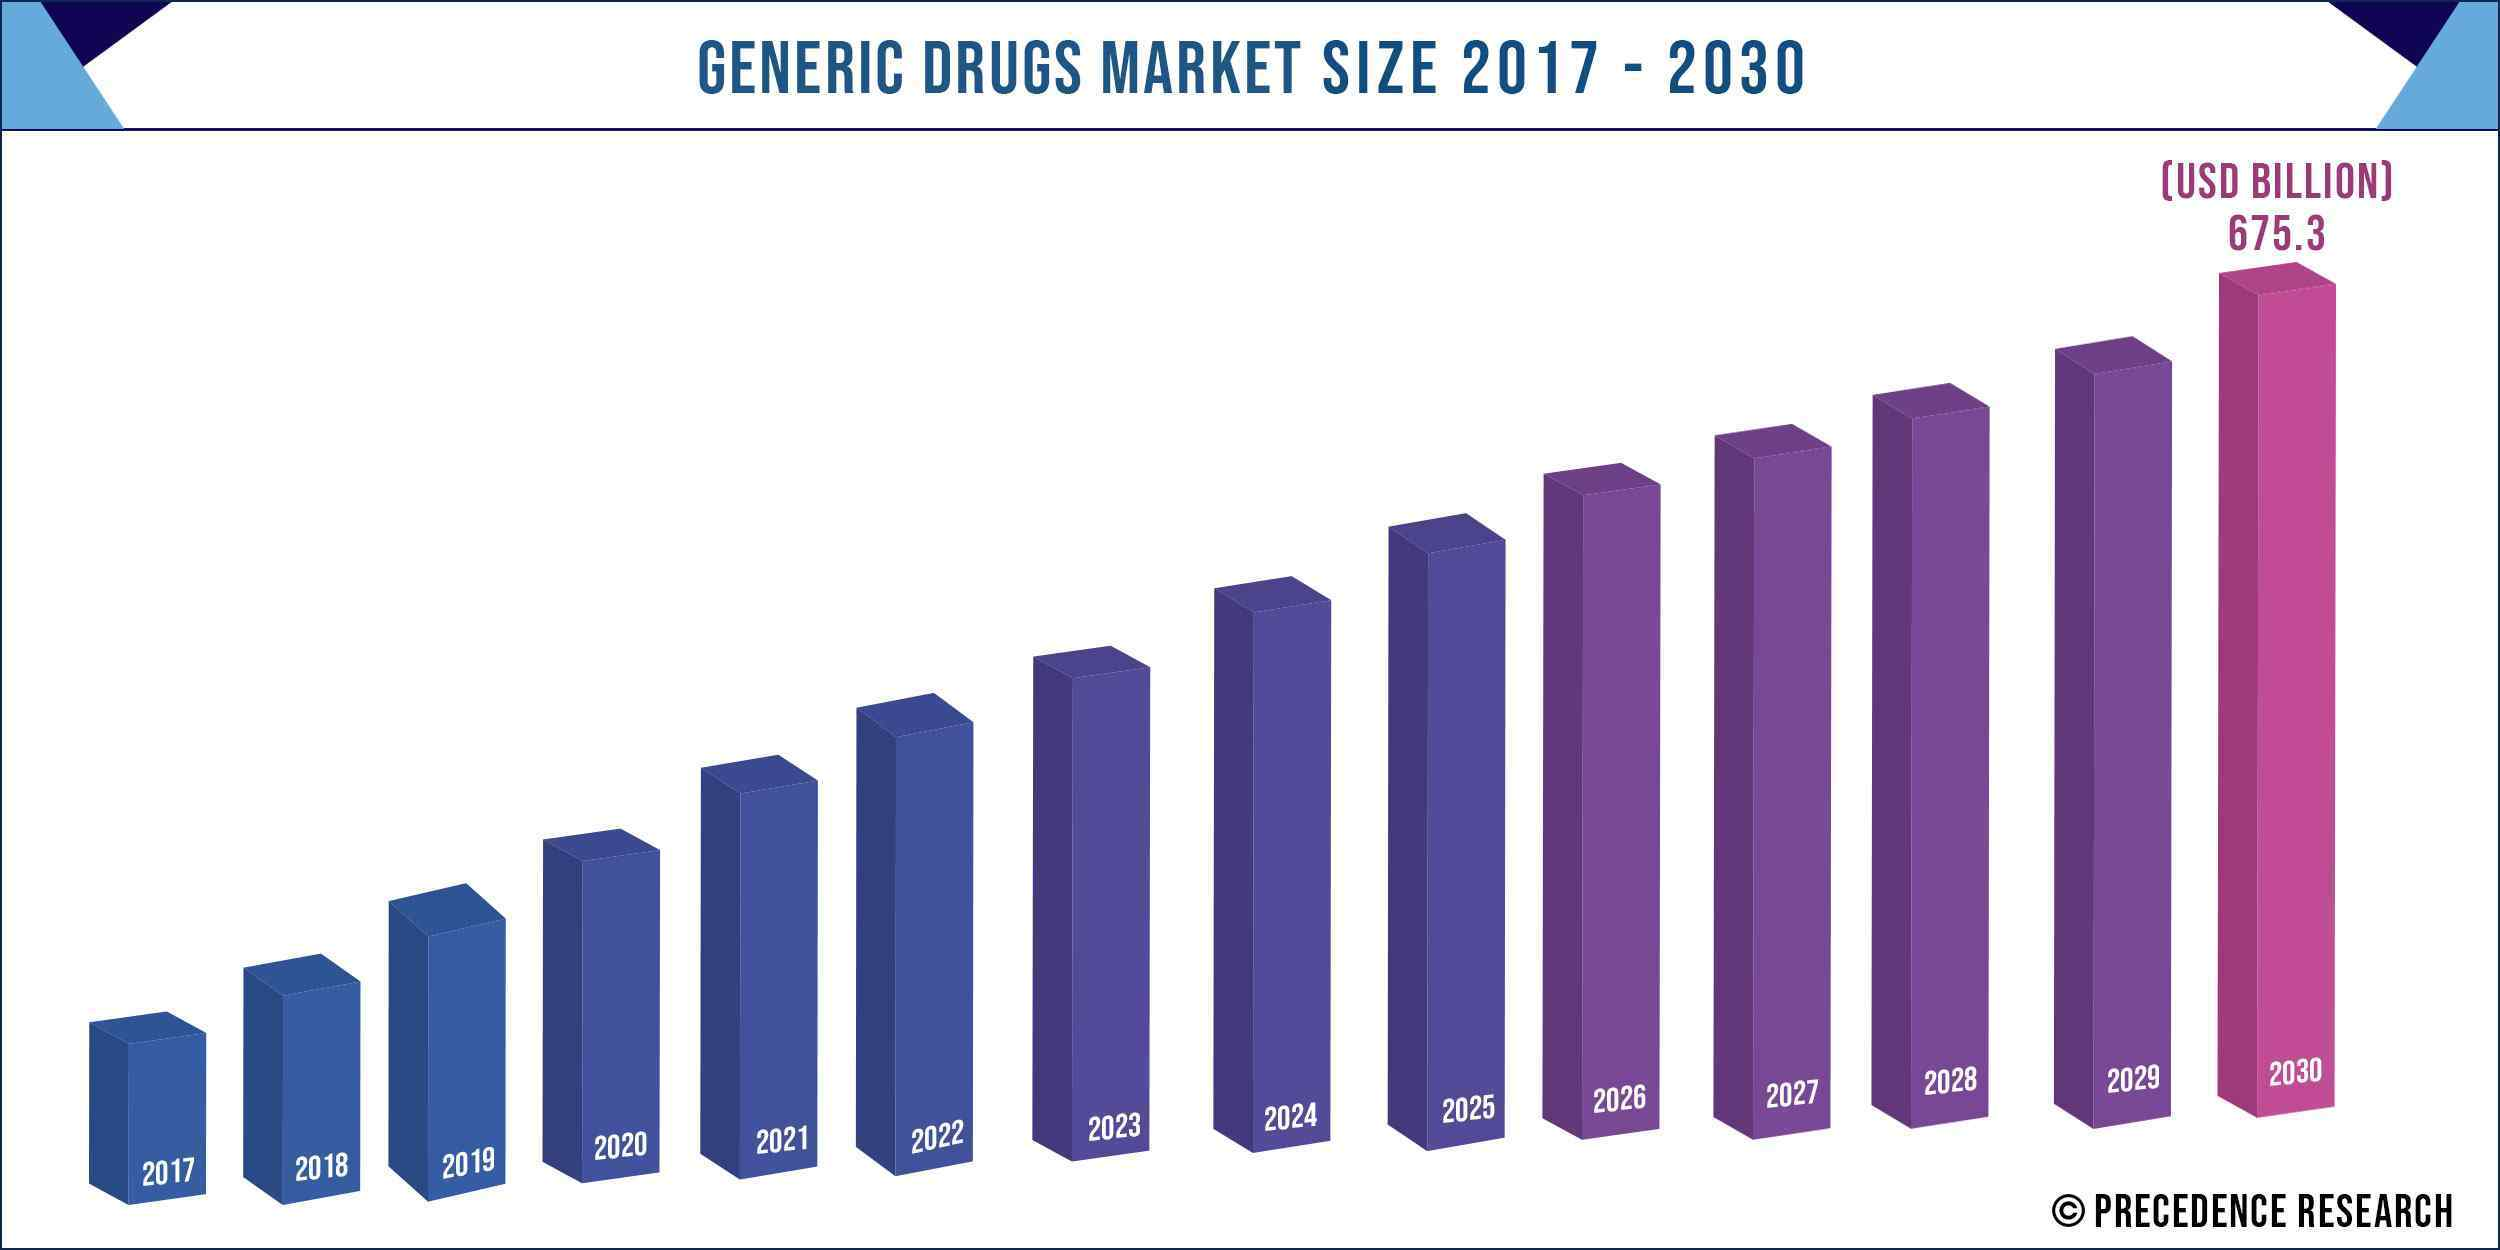 Generic Drugs Market Size 2017 to 2030